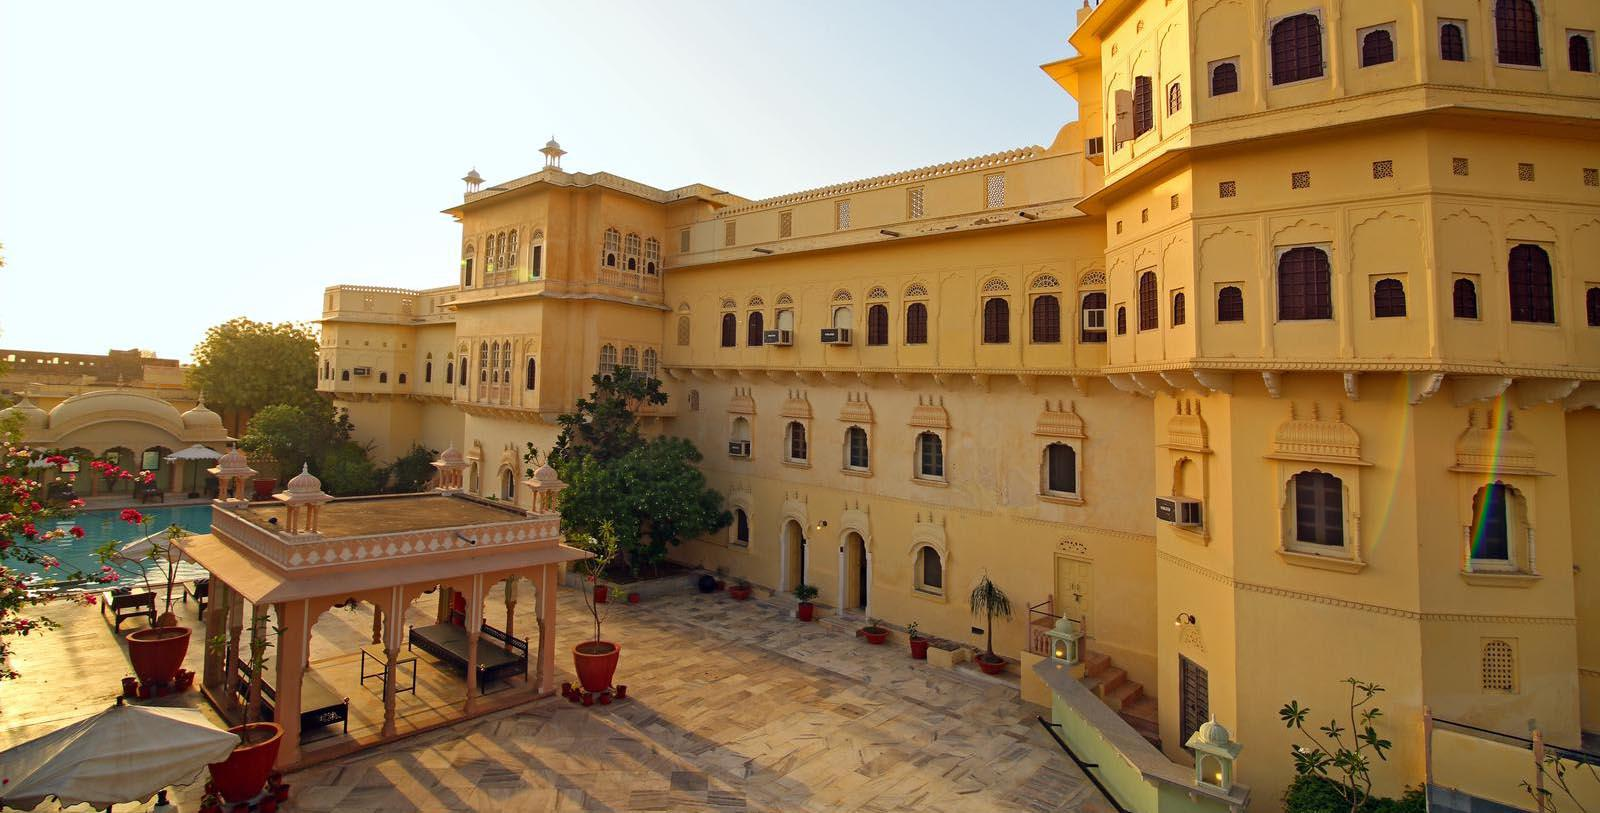 Image of hotel exterior courtyard with pool Alsisar Mahal, 1800s, Member of Historic Hotels Worldwide, in Jhunjhunu, India, Hot Deals